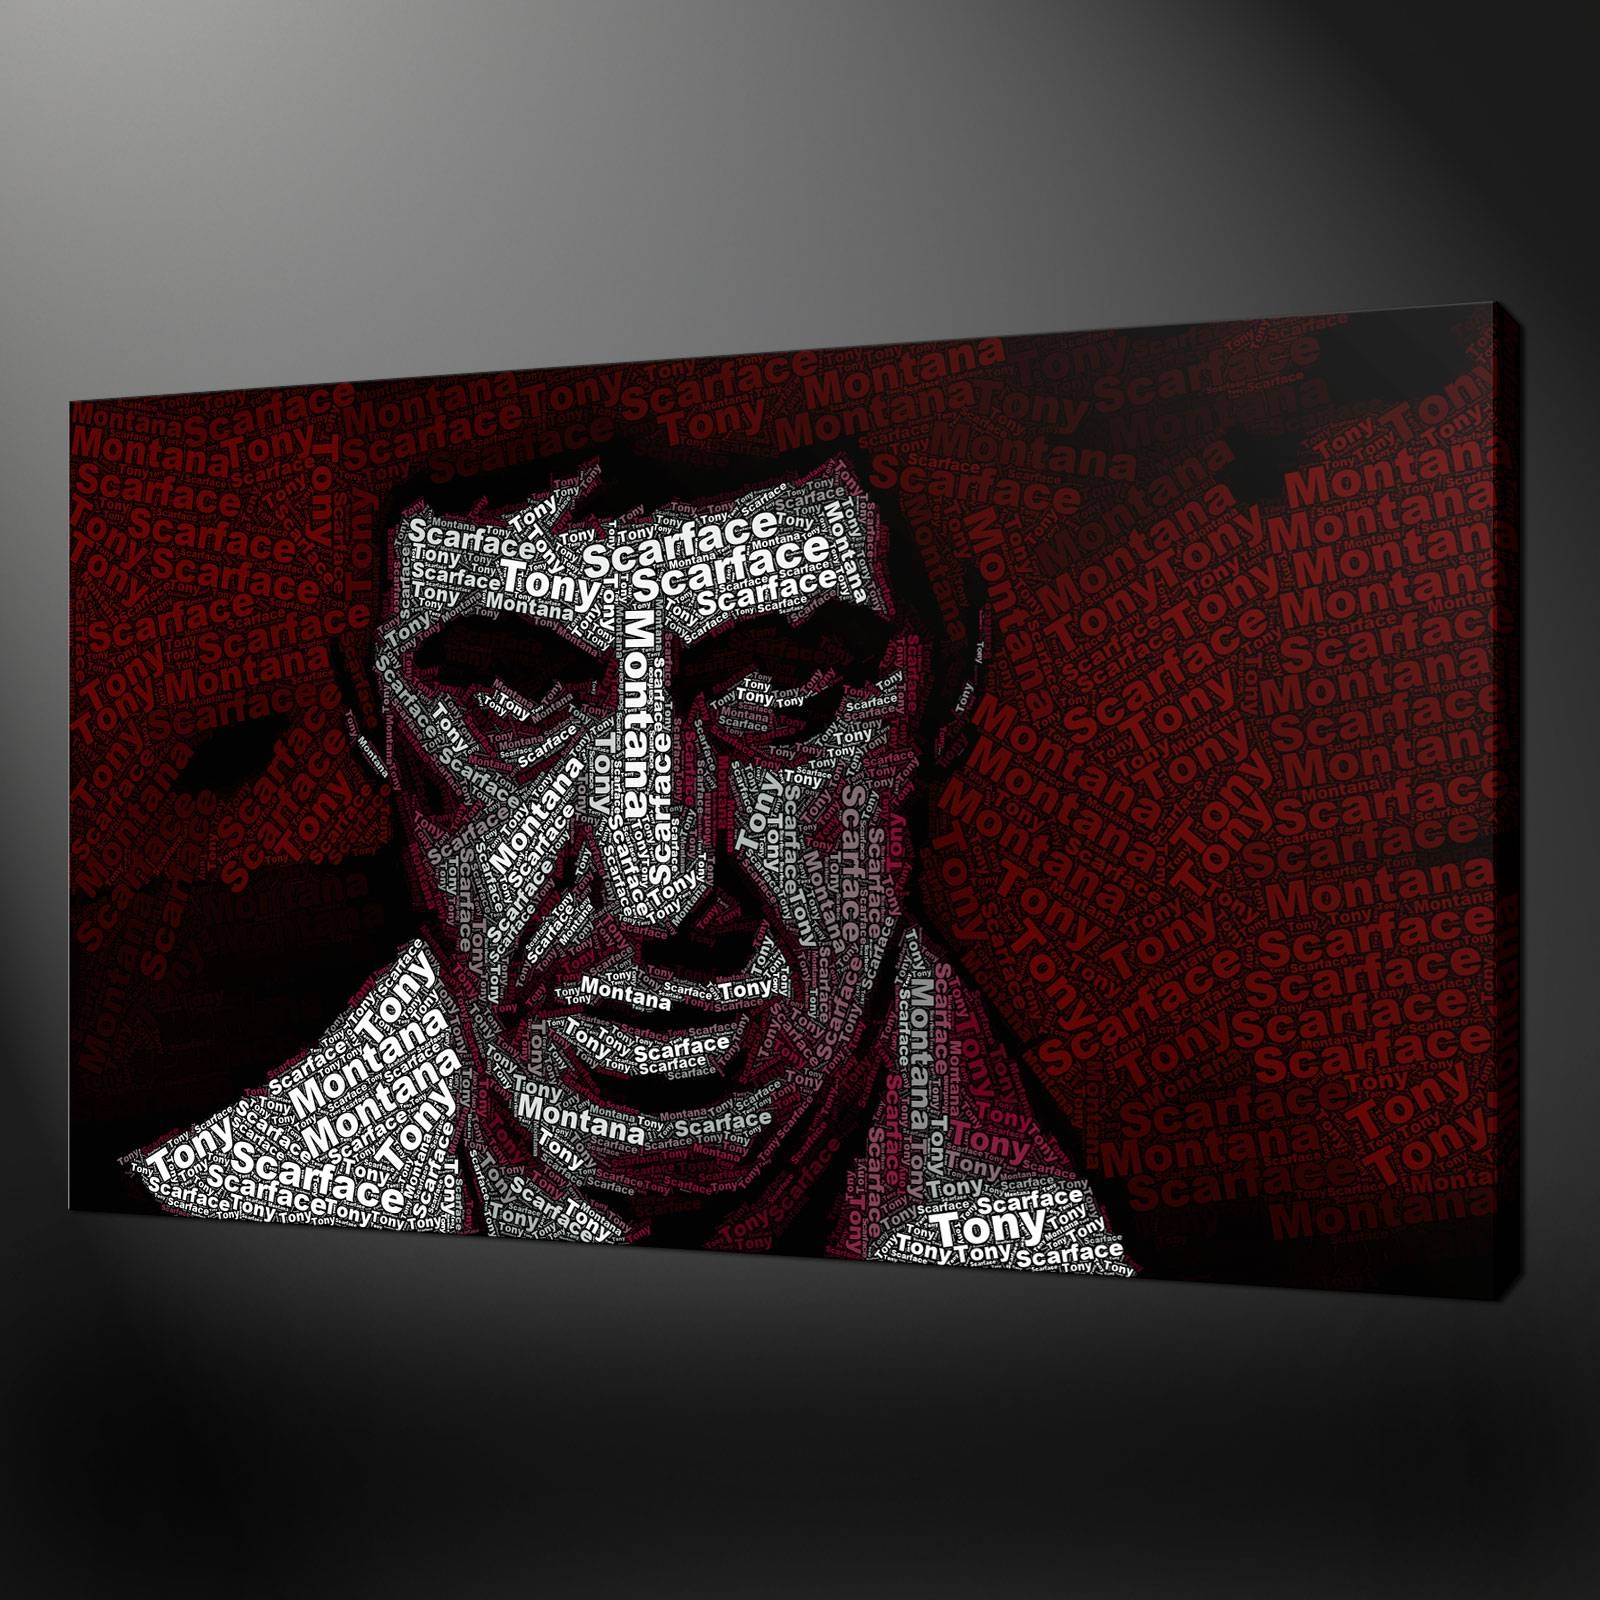 Tony Montana Scarface Typography Canvas Wall Art Print Picture For Most Up To Date Typography Canvas Wall Art (View 16 of 20)